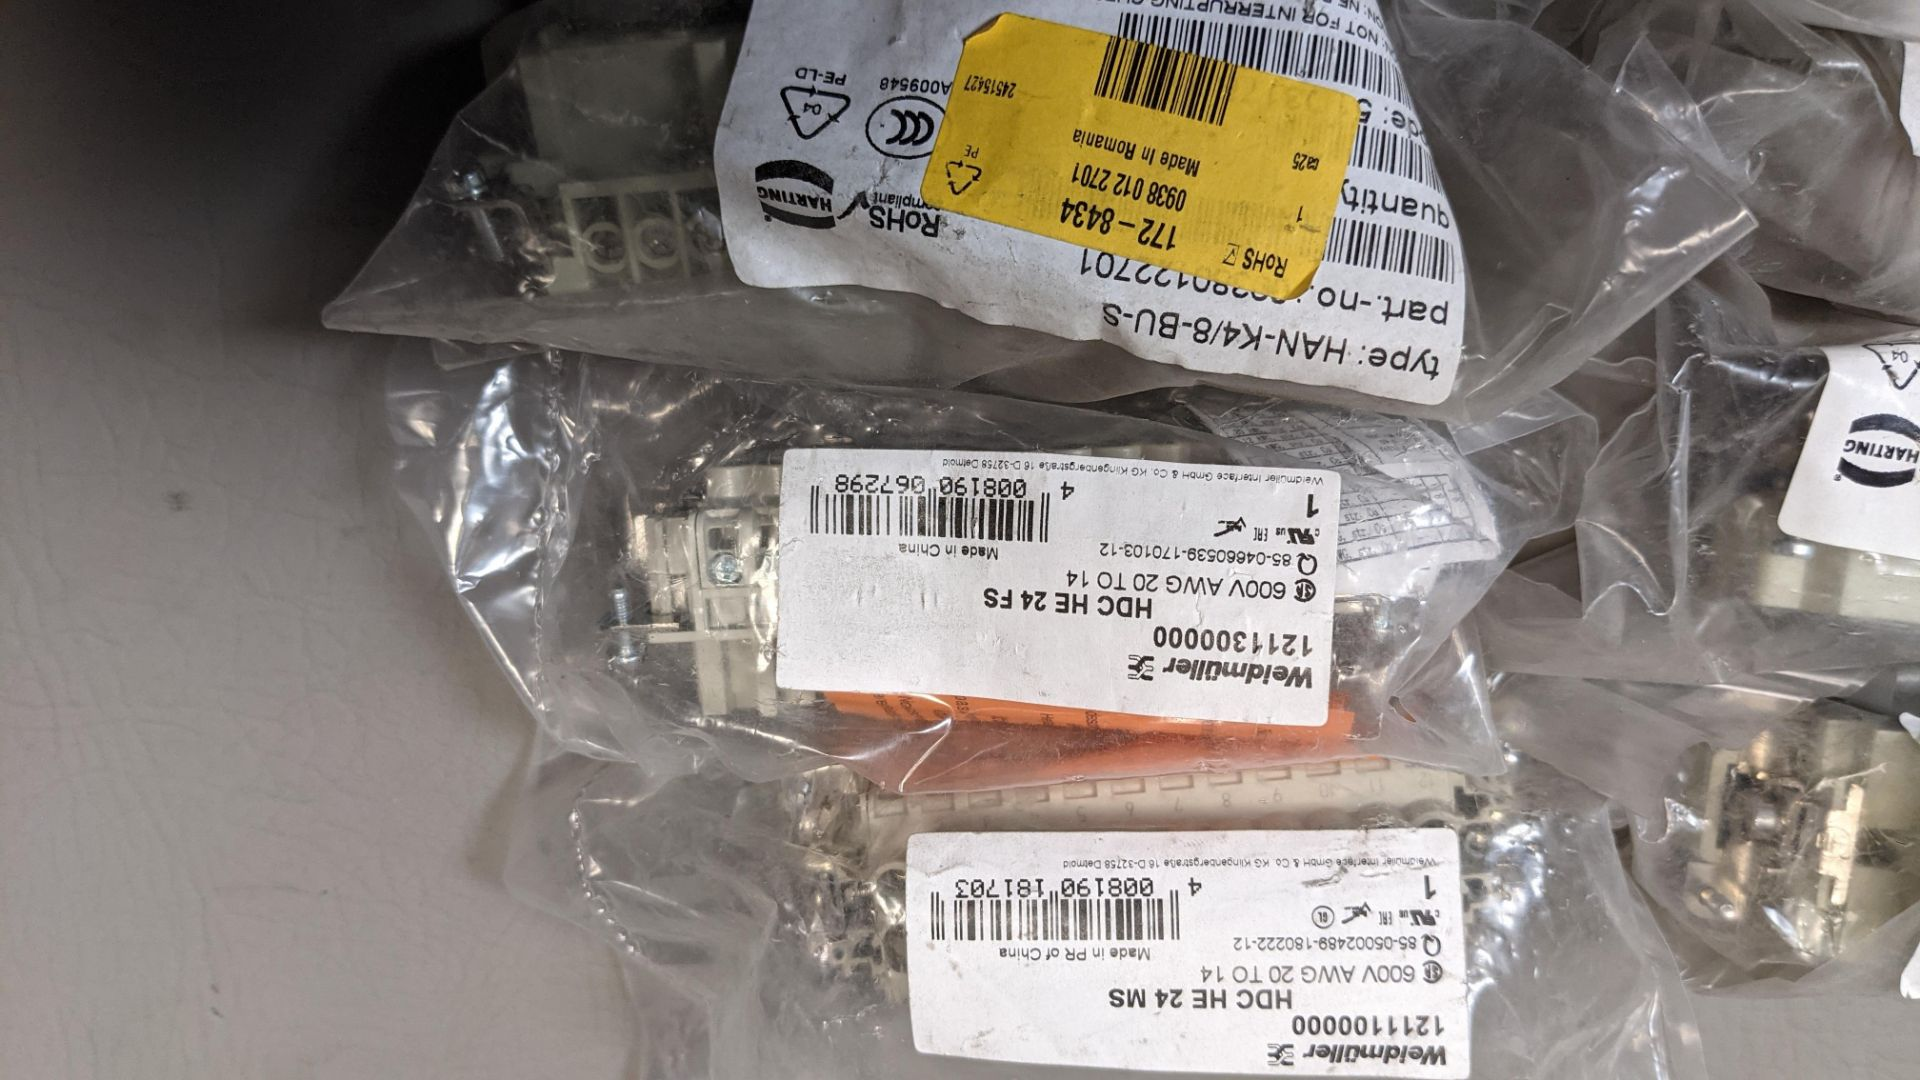 LOT OF NEW HARTING ELECTRICAL CONNECTORS - Image 5 of 6